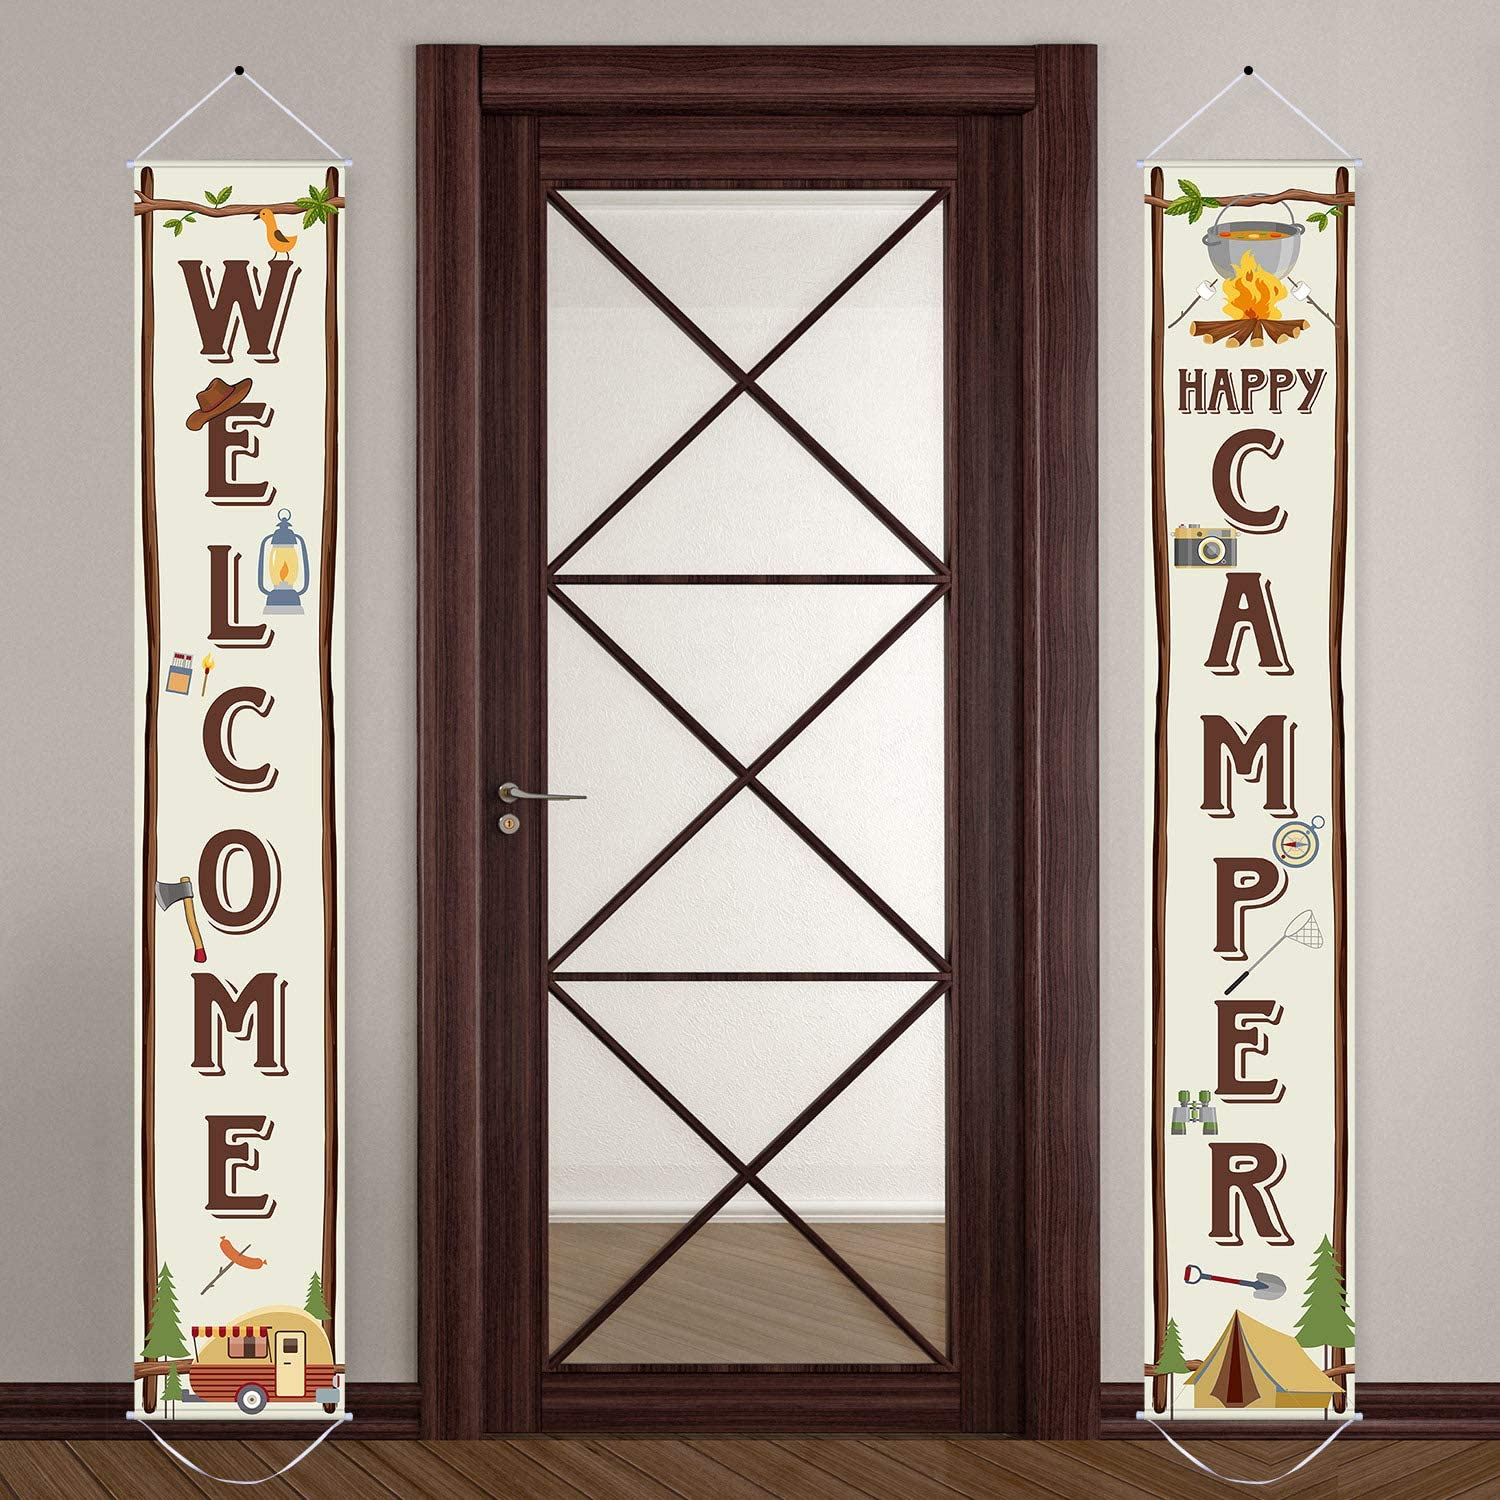 Camping Party Banner Camping Party Decorations Welcome Porch Sign for Camping Themed Birthday Baby Shower Decorations